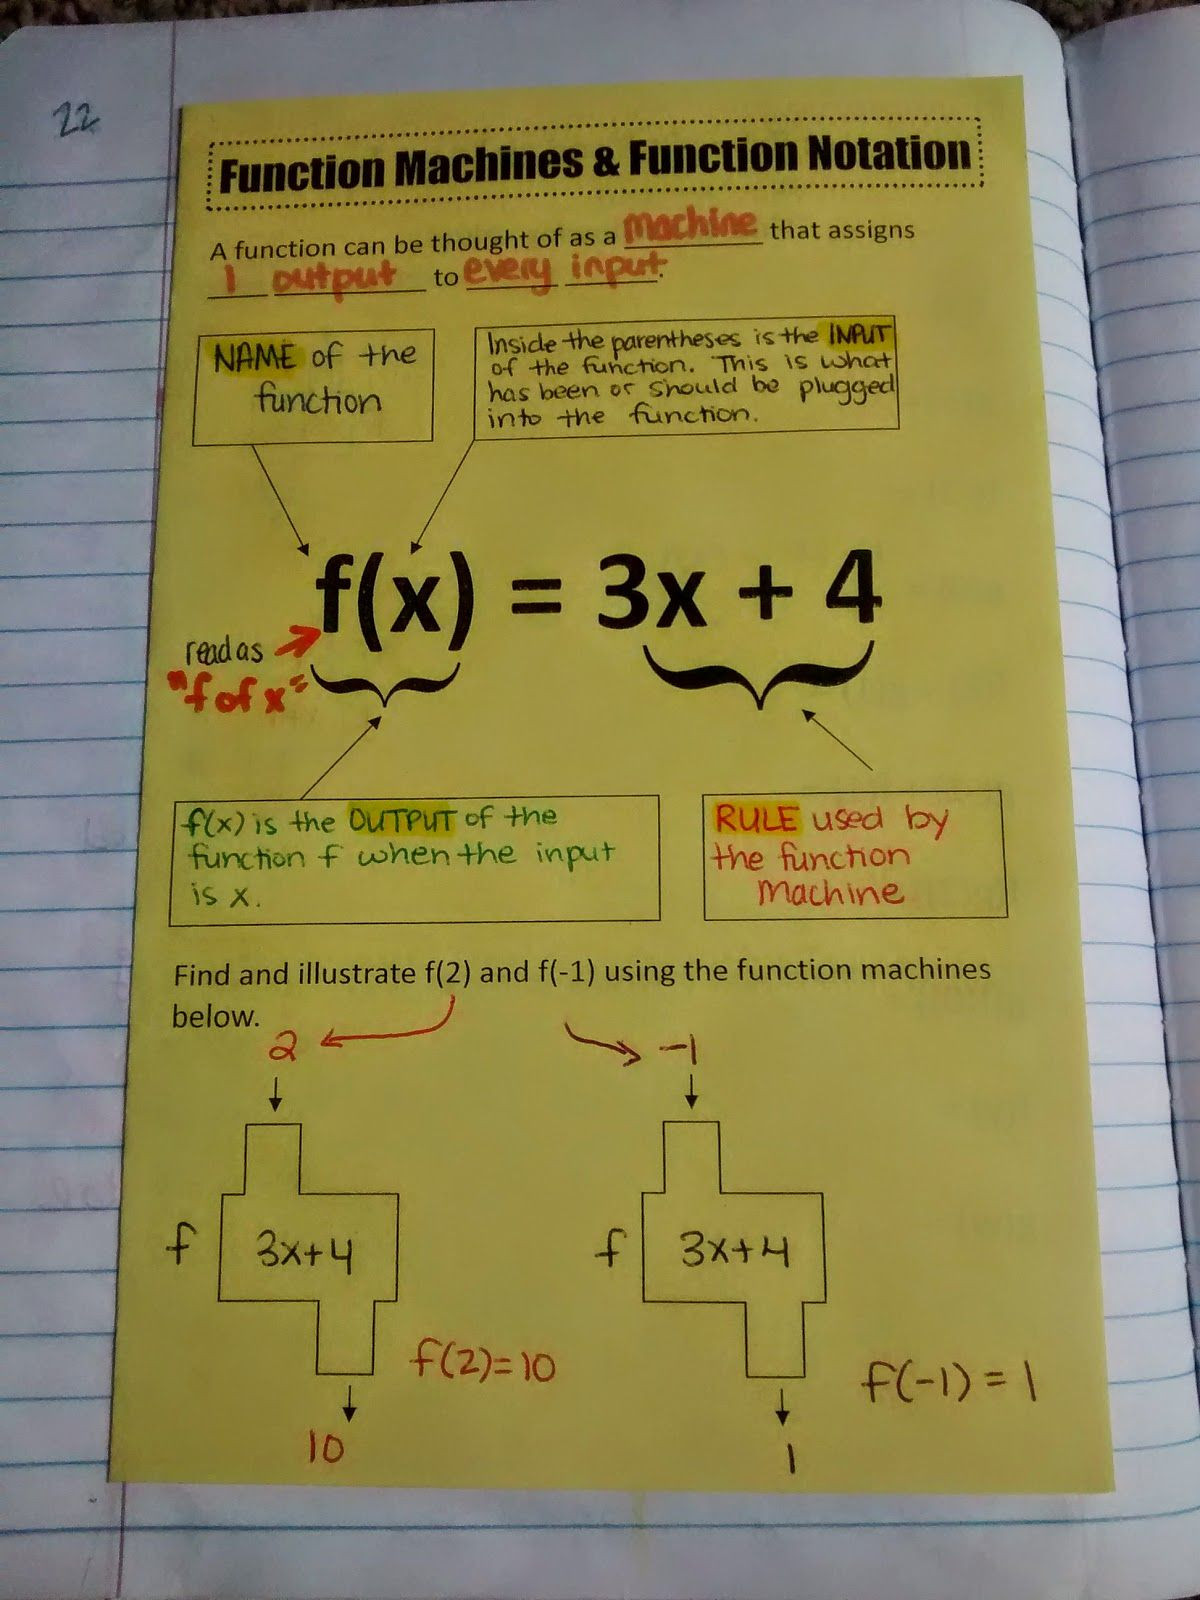 Function Notation Worksheet Answers 2014 2015 Algebra 1 Unit 1 Interactive Notebook Pages